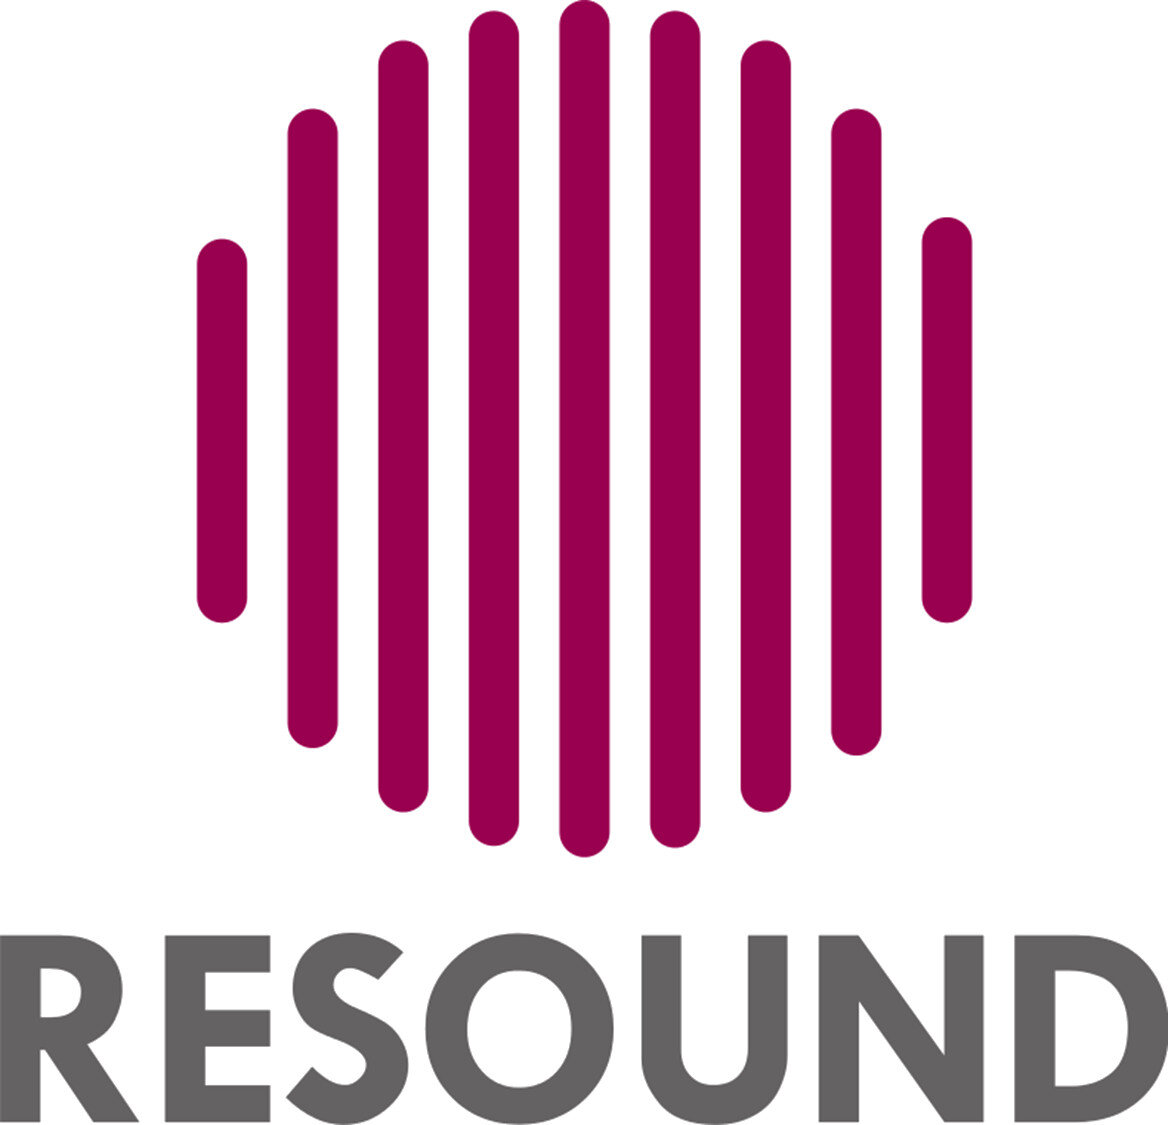 We are able to provide this support group through the kind and generous of support of Resound who provide the venue.